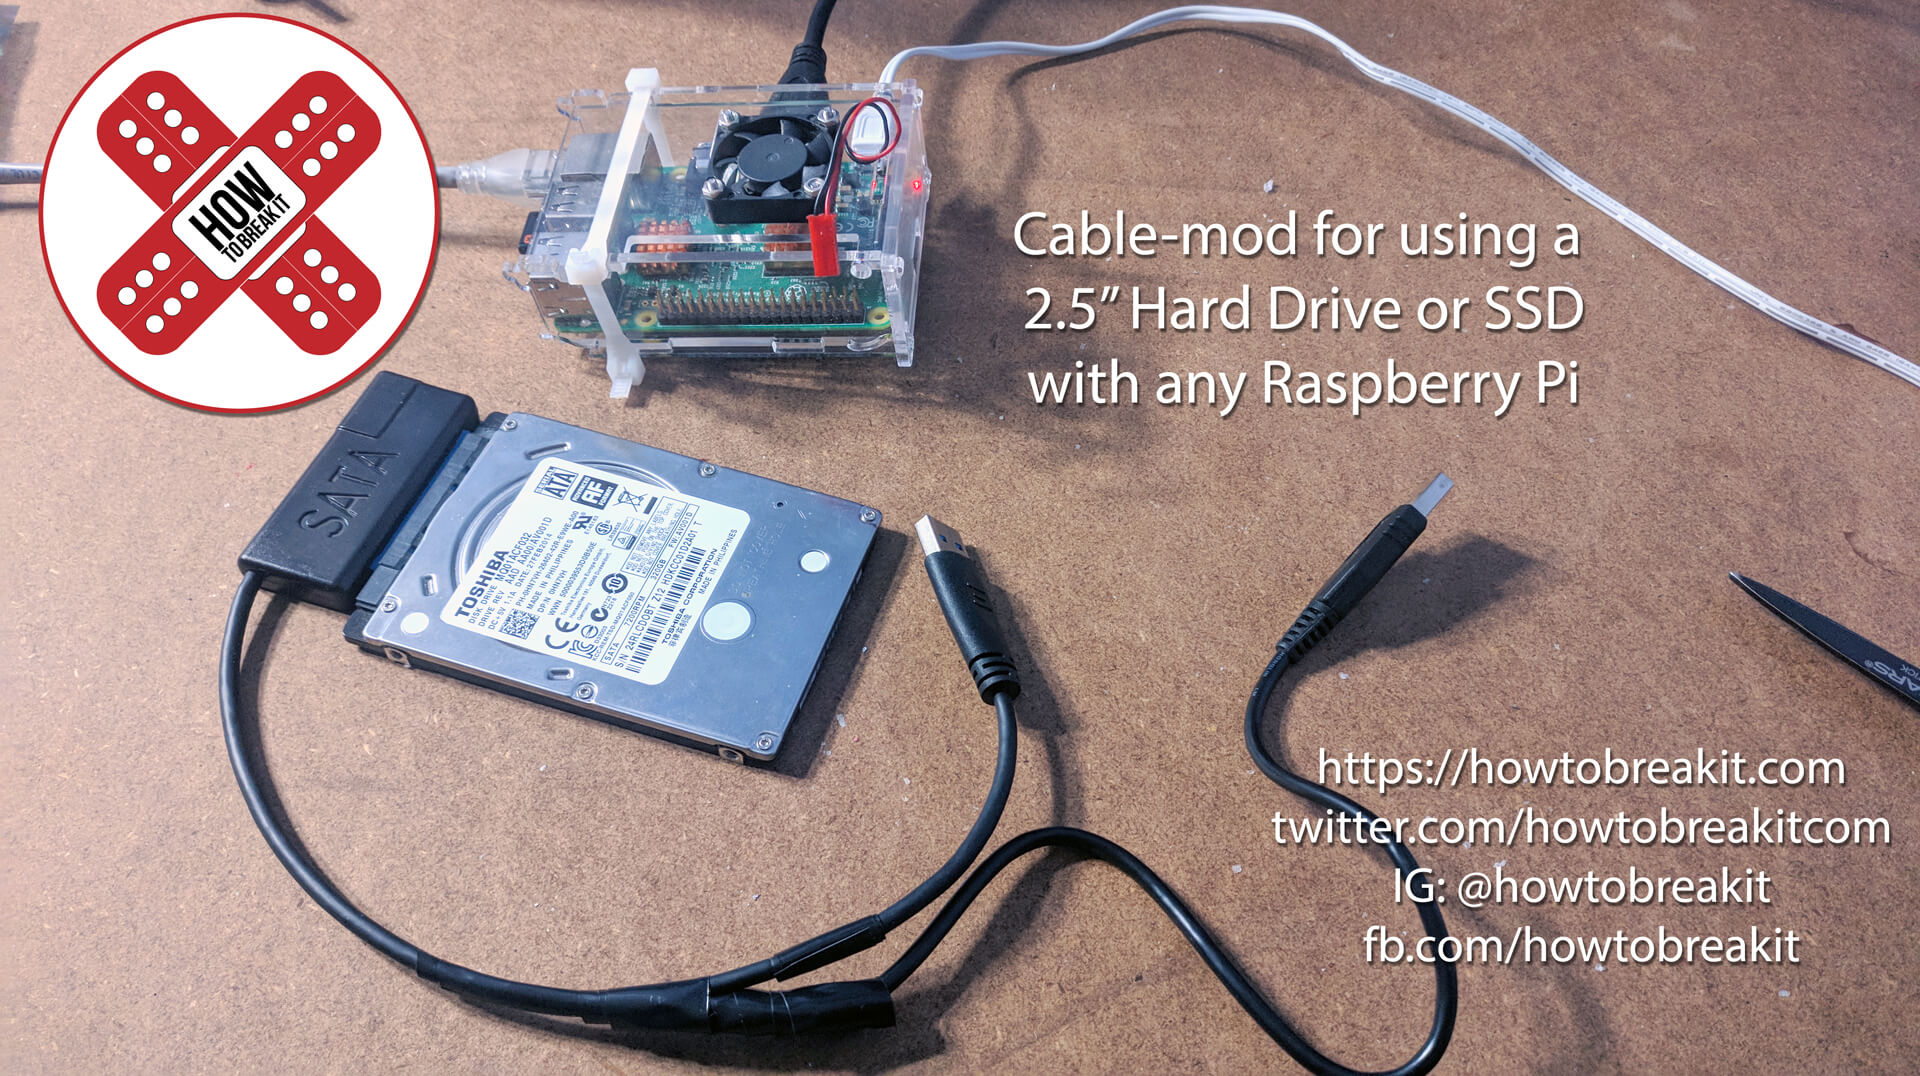 Modifying a USB to Sata adapter cable for use with a Raspberry Pi!